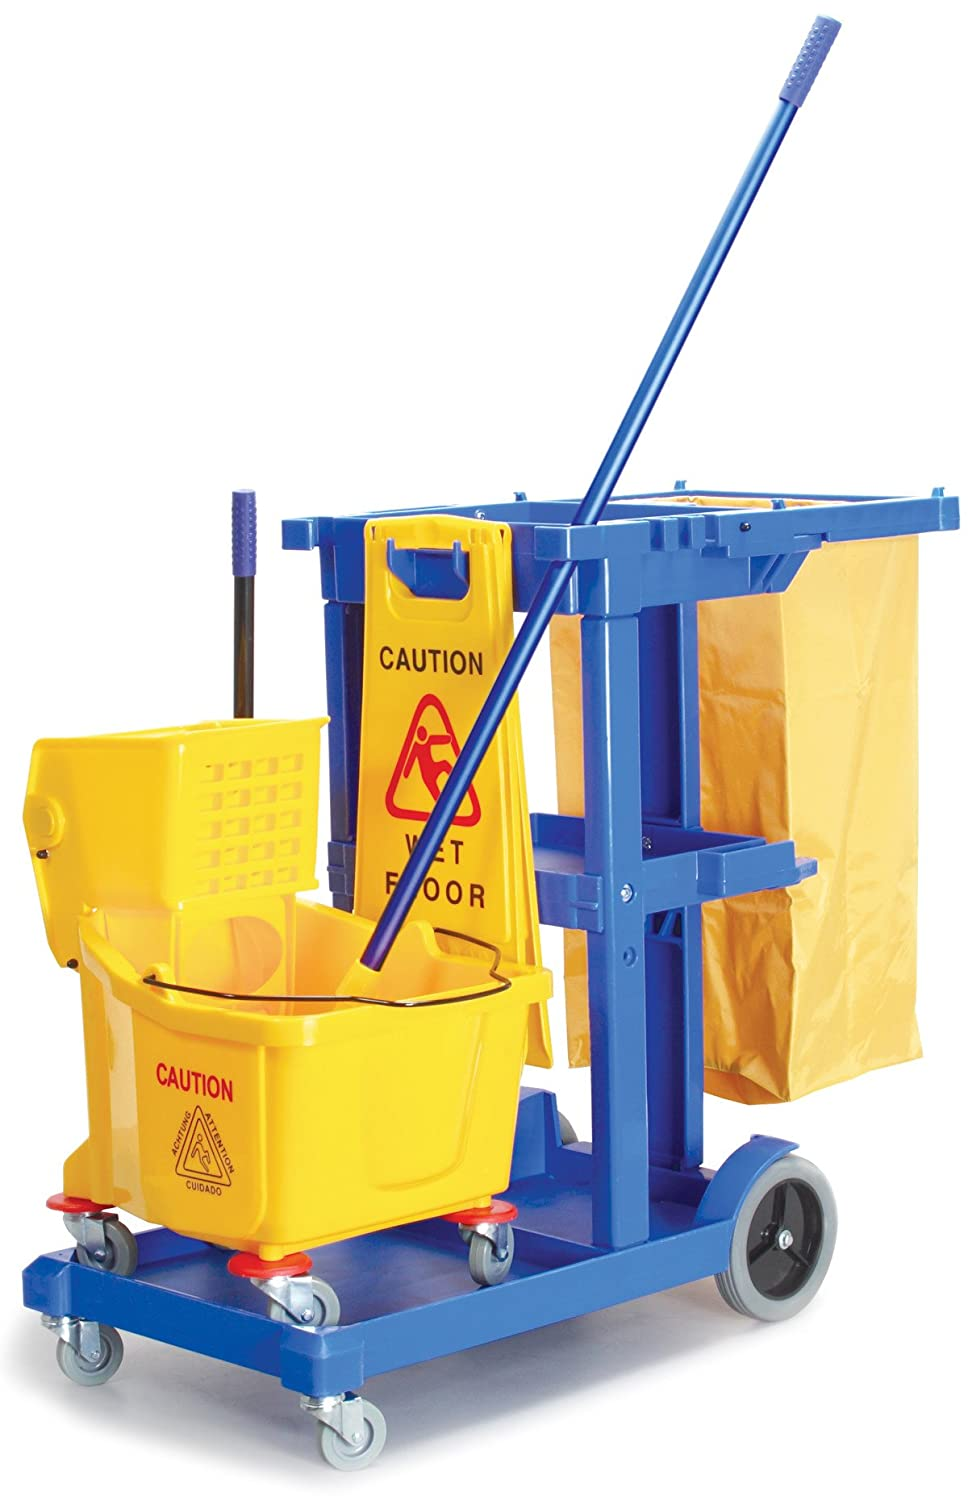 Powr Flite JANKIT Janitorial Sanitation Kit Includes Cleaning Cart Wet Floor Sign Jaw Grip Mop Handle and 9 gal Mop Bucket